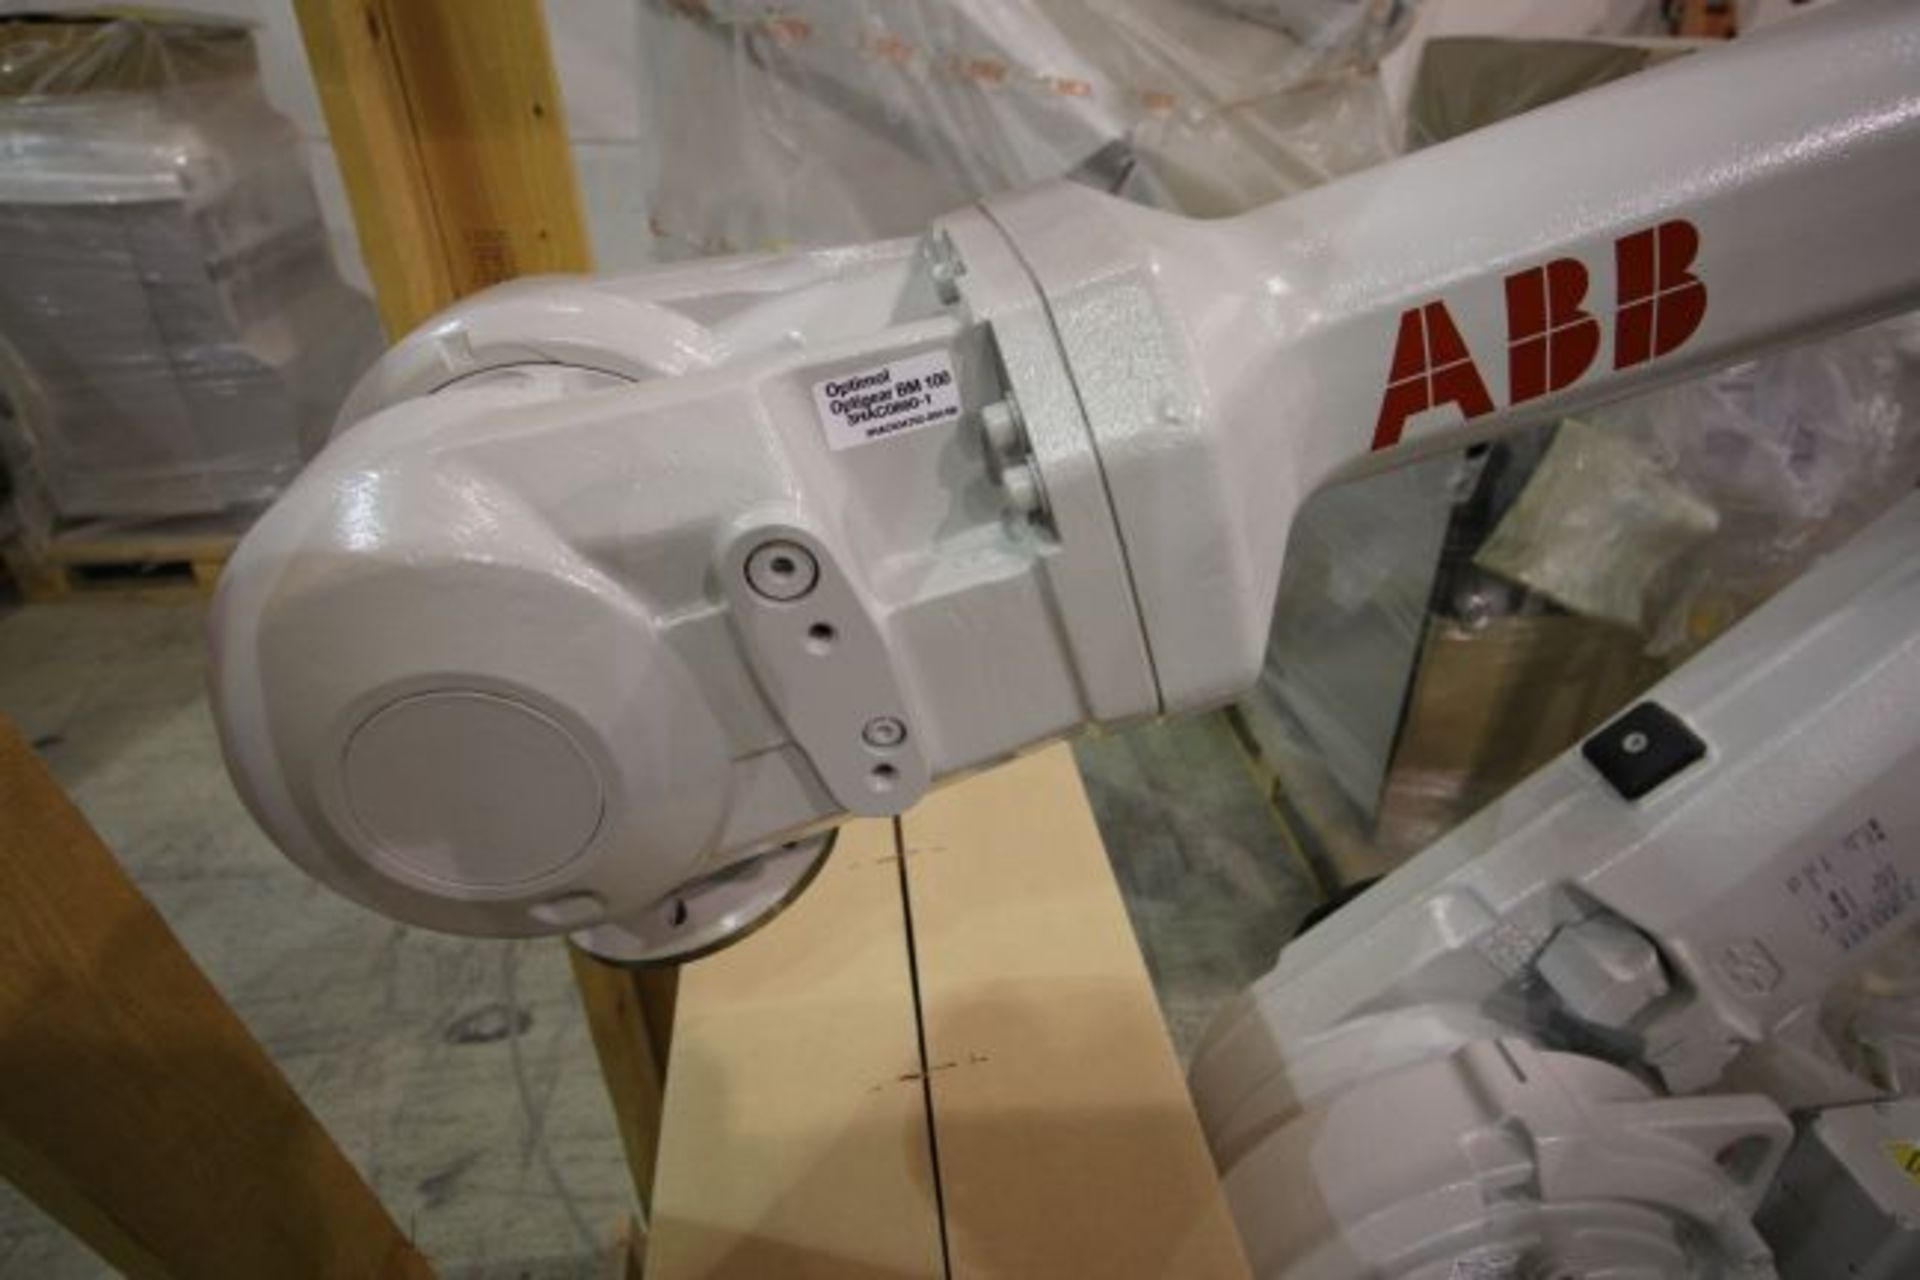 (NEW) ABB ROBOT IRB 4600 2.55/40KG WITH IRC5 CONTROLS, YEAR 2014, SN 101900 TEACH PENDANT& CABLES - Image 3 of 9